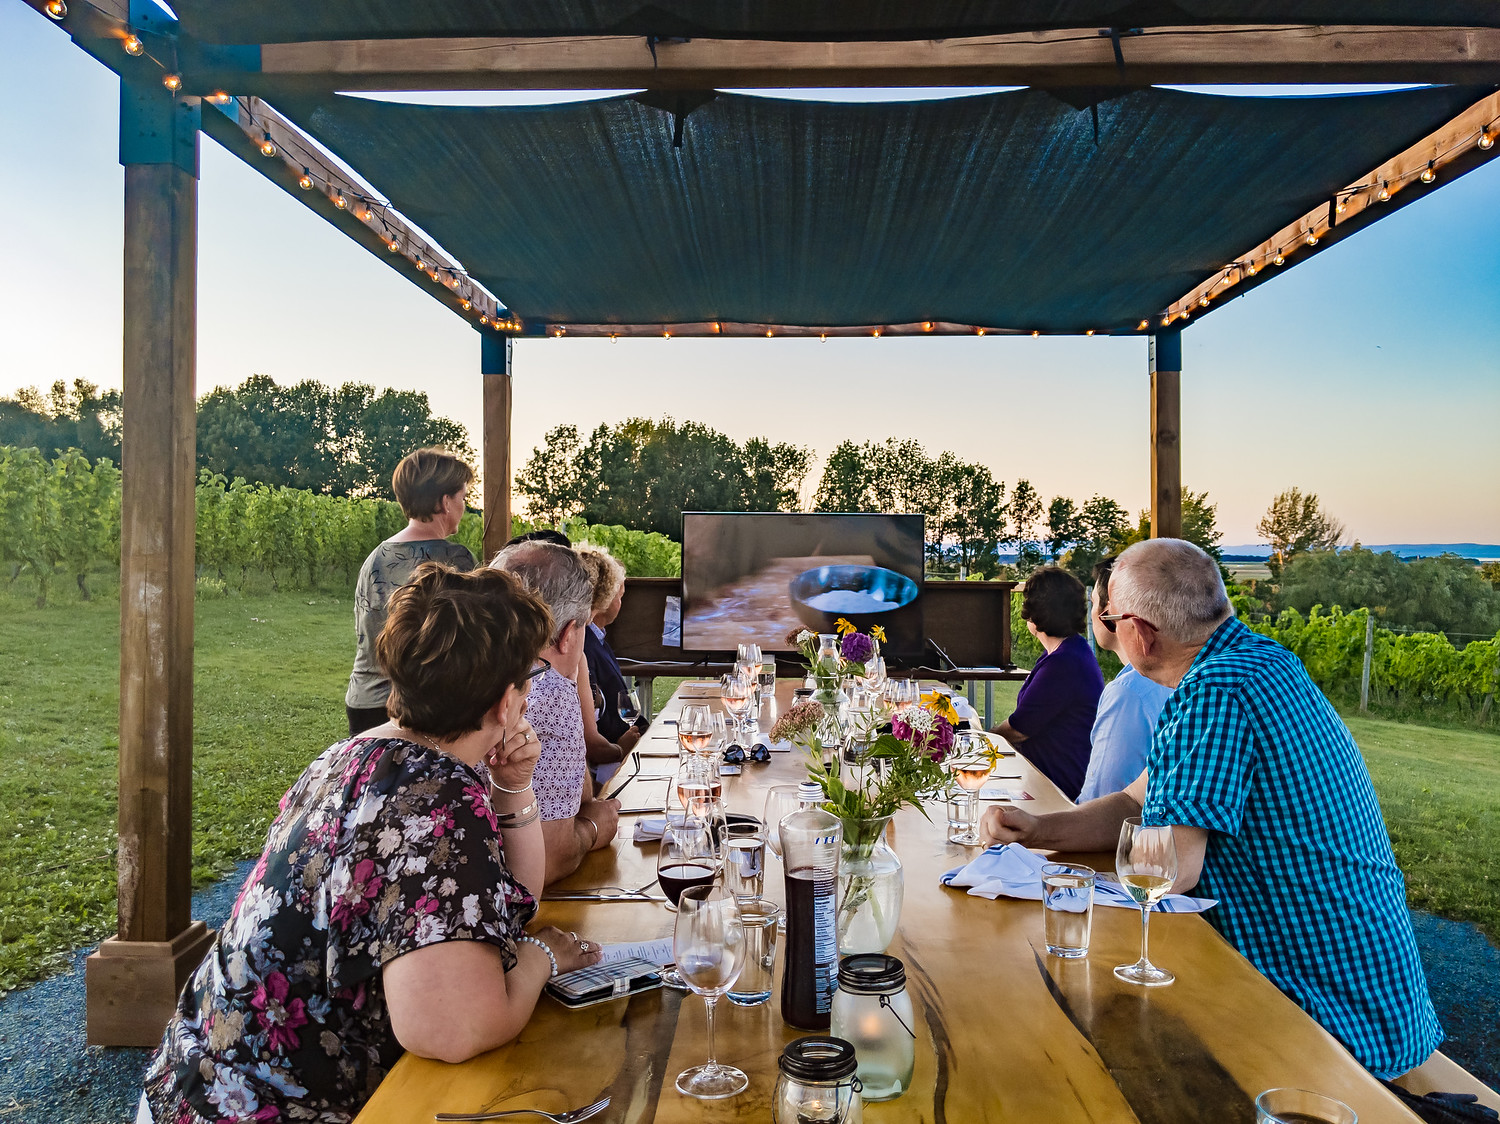 Devour the Vines event at Domain de Grand Pre in Nova Scotia